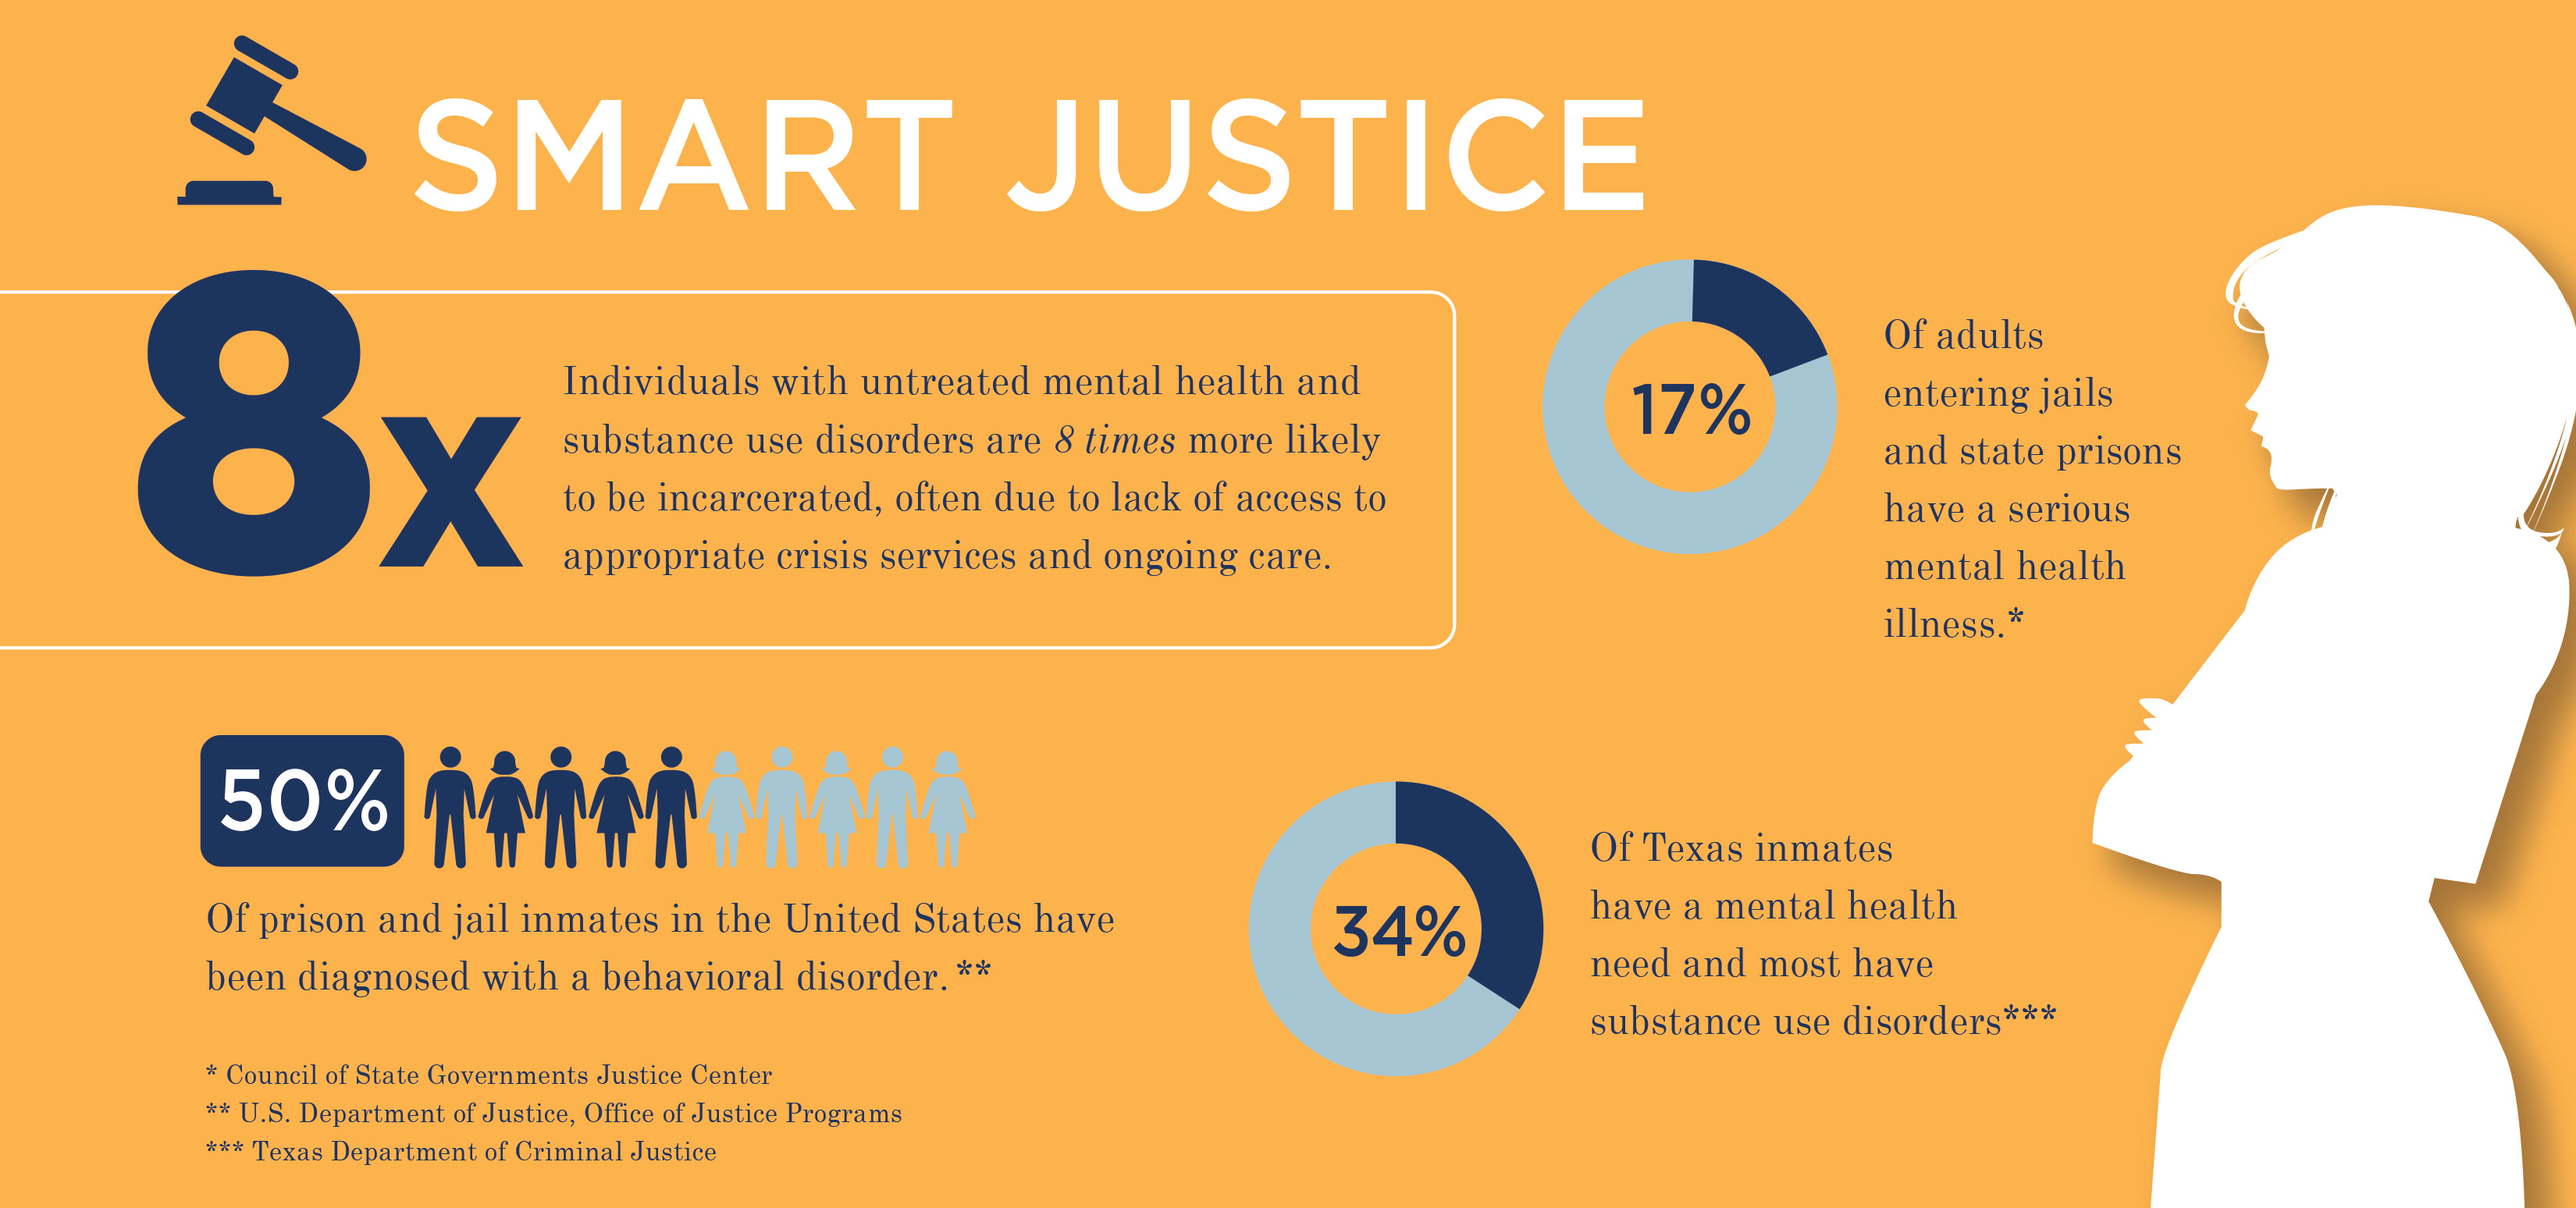 Promoting smart justice for the mentally ill